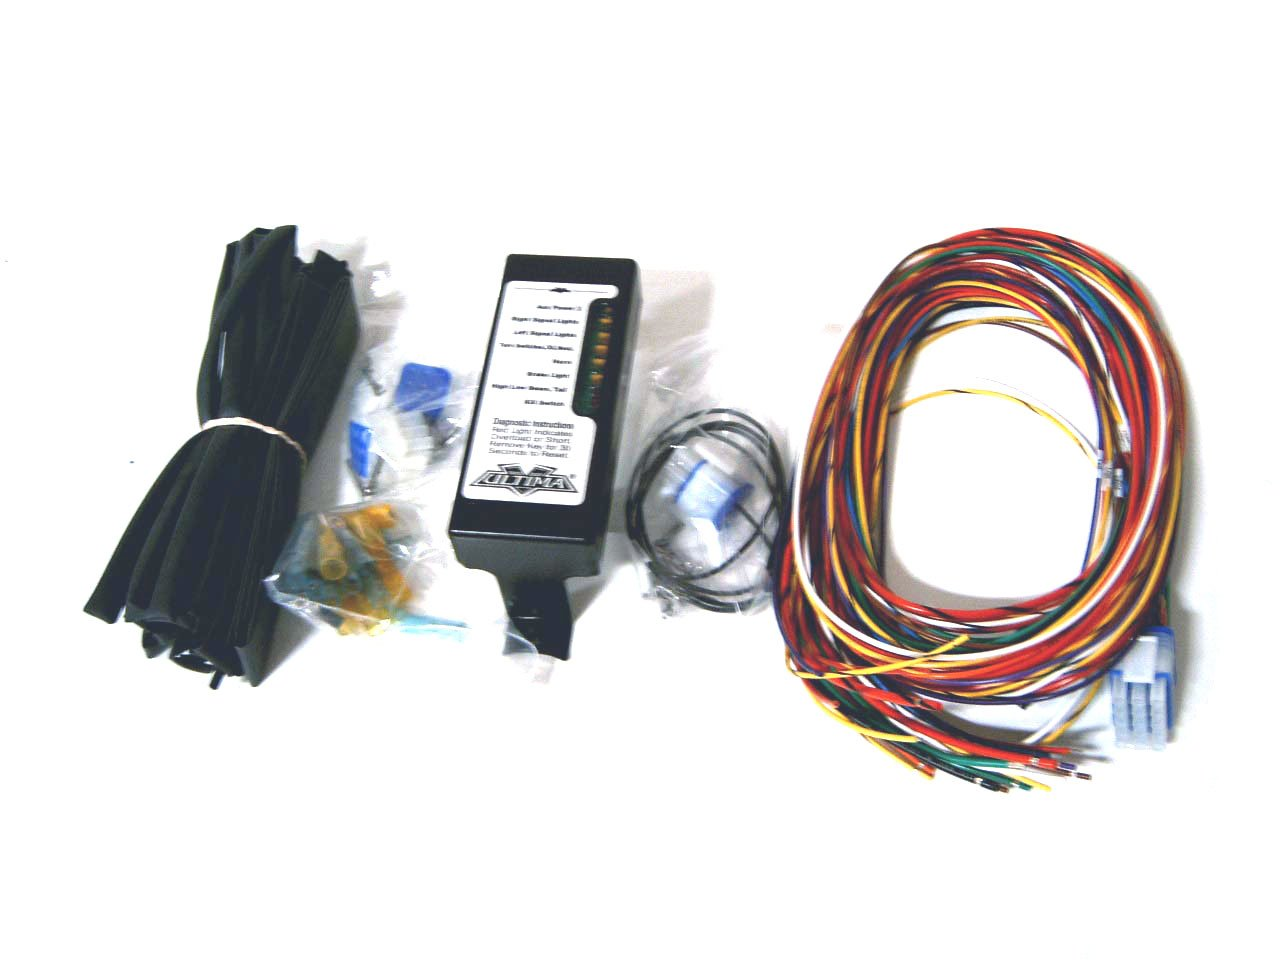 61DV2Bq5%2BHL._SL1280_ amazon com ultima complete wiring harness kit for harley davidson universal wiring harness kits at crackthecode.co